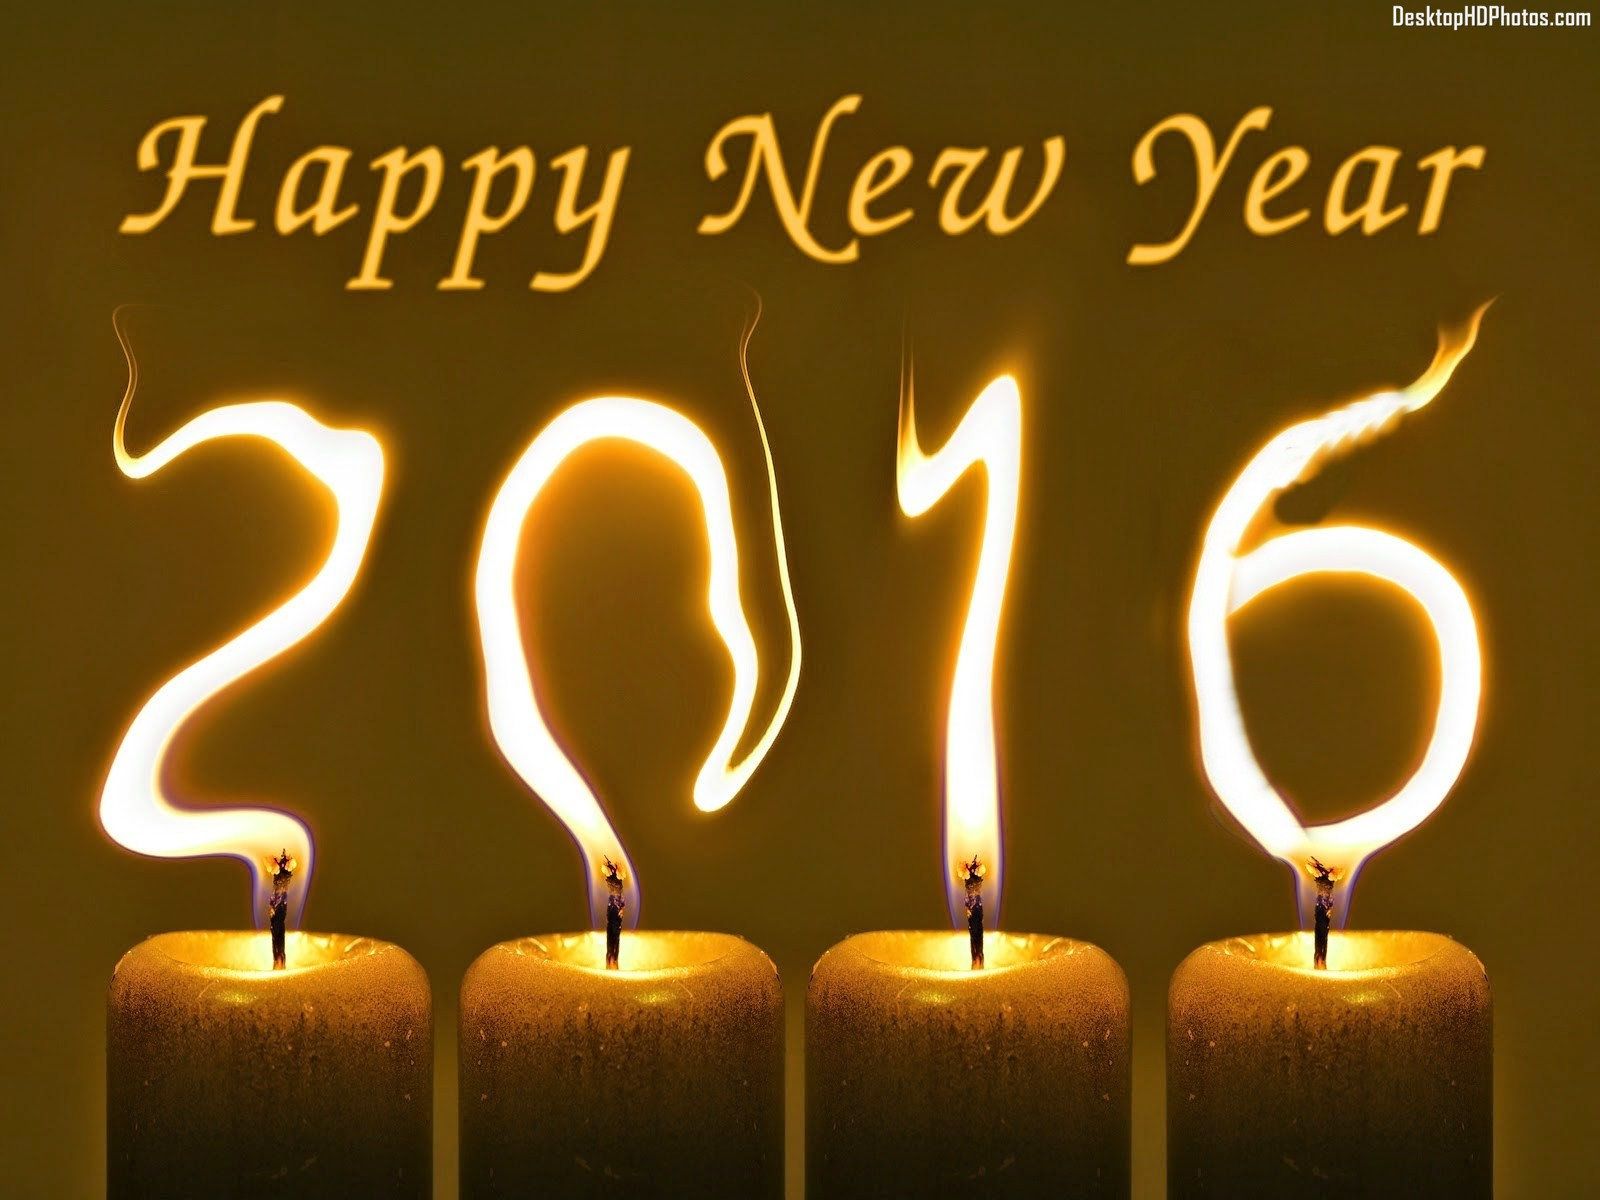 Wallpaper download new year 2015 - You Can Also Download All These Wallpapers Form The All In One Zip File For New Year 2016 Wallpapers